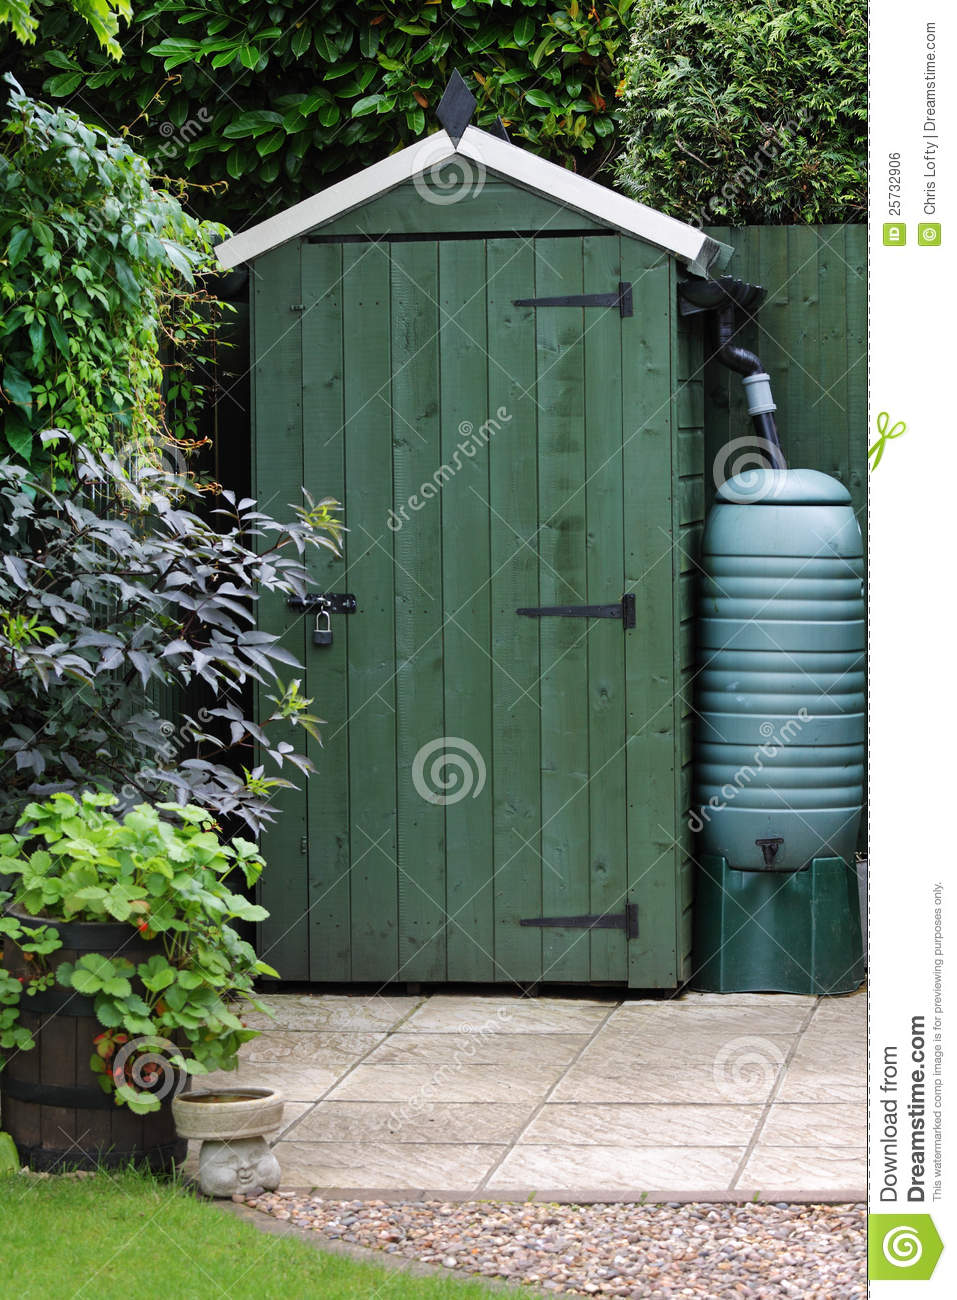 Garden shed in an english garden royalty free stock image for English garden shed designs